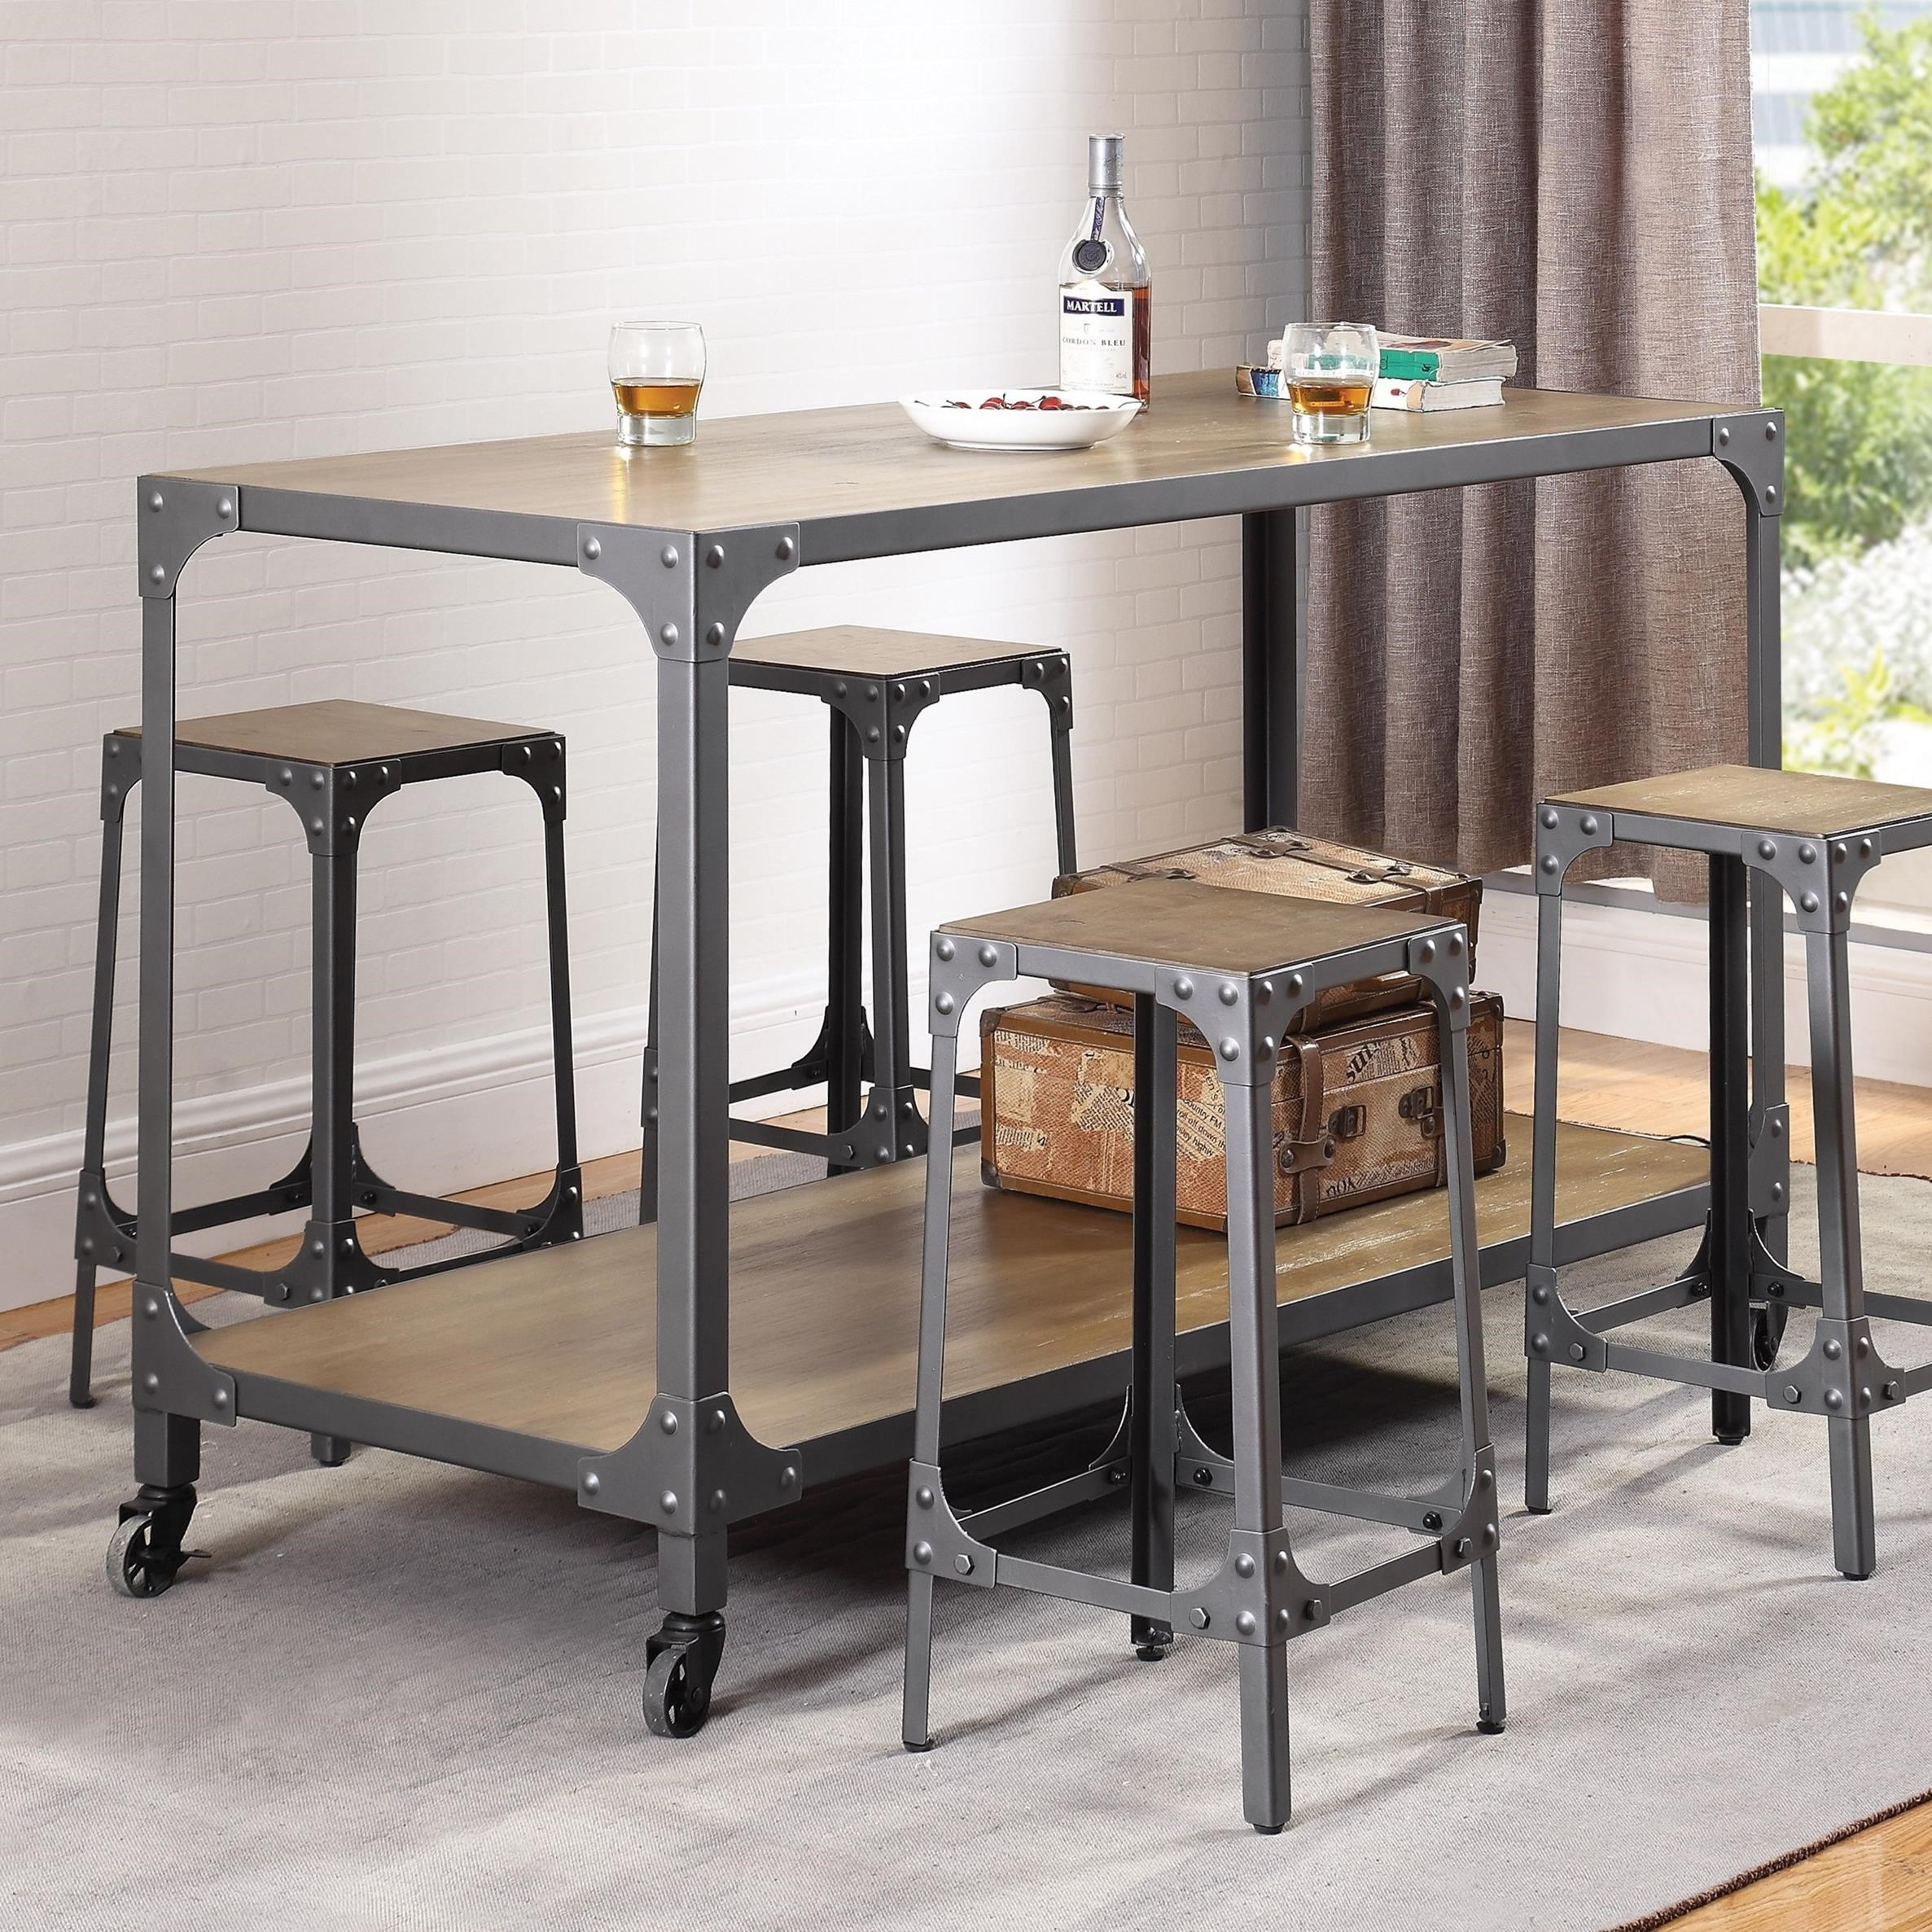 rustic kitchen cart island coaster kitchen carts rustic kitchen island value city 4993